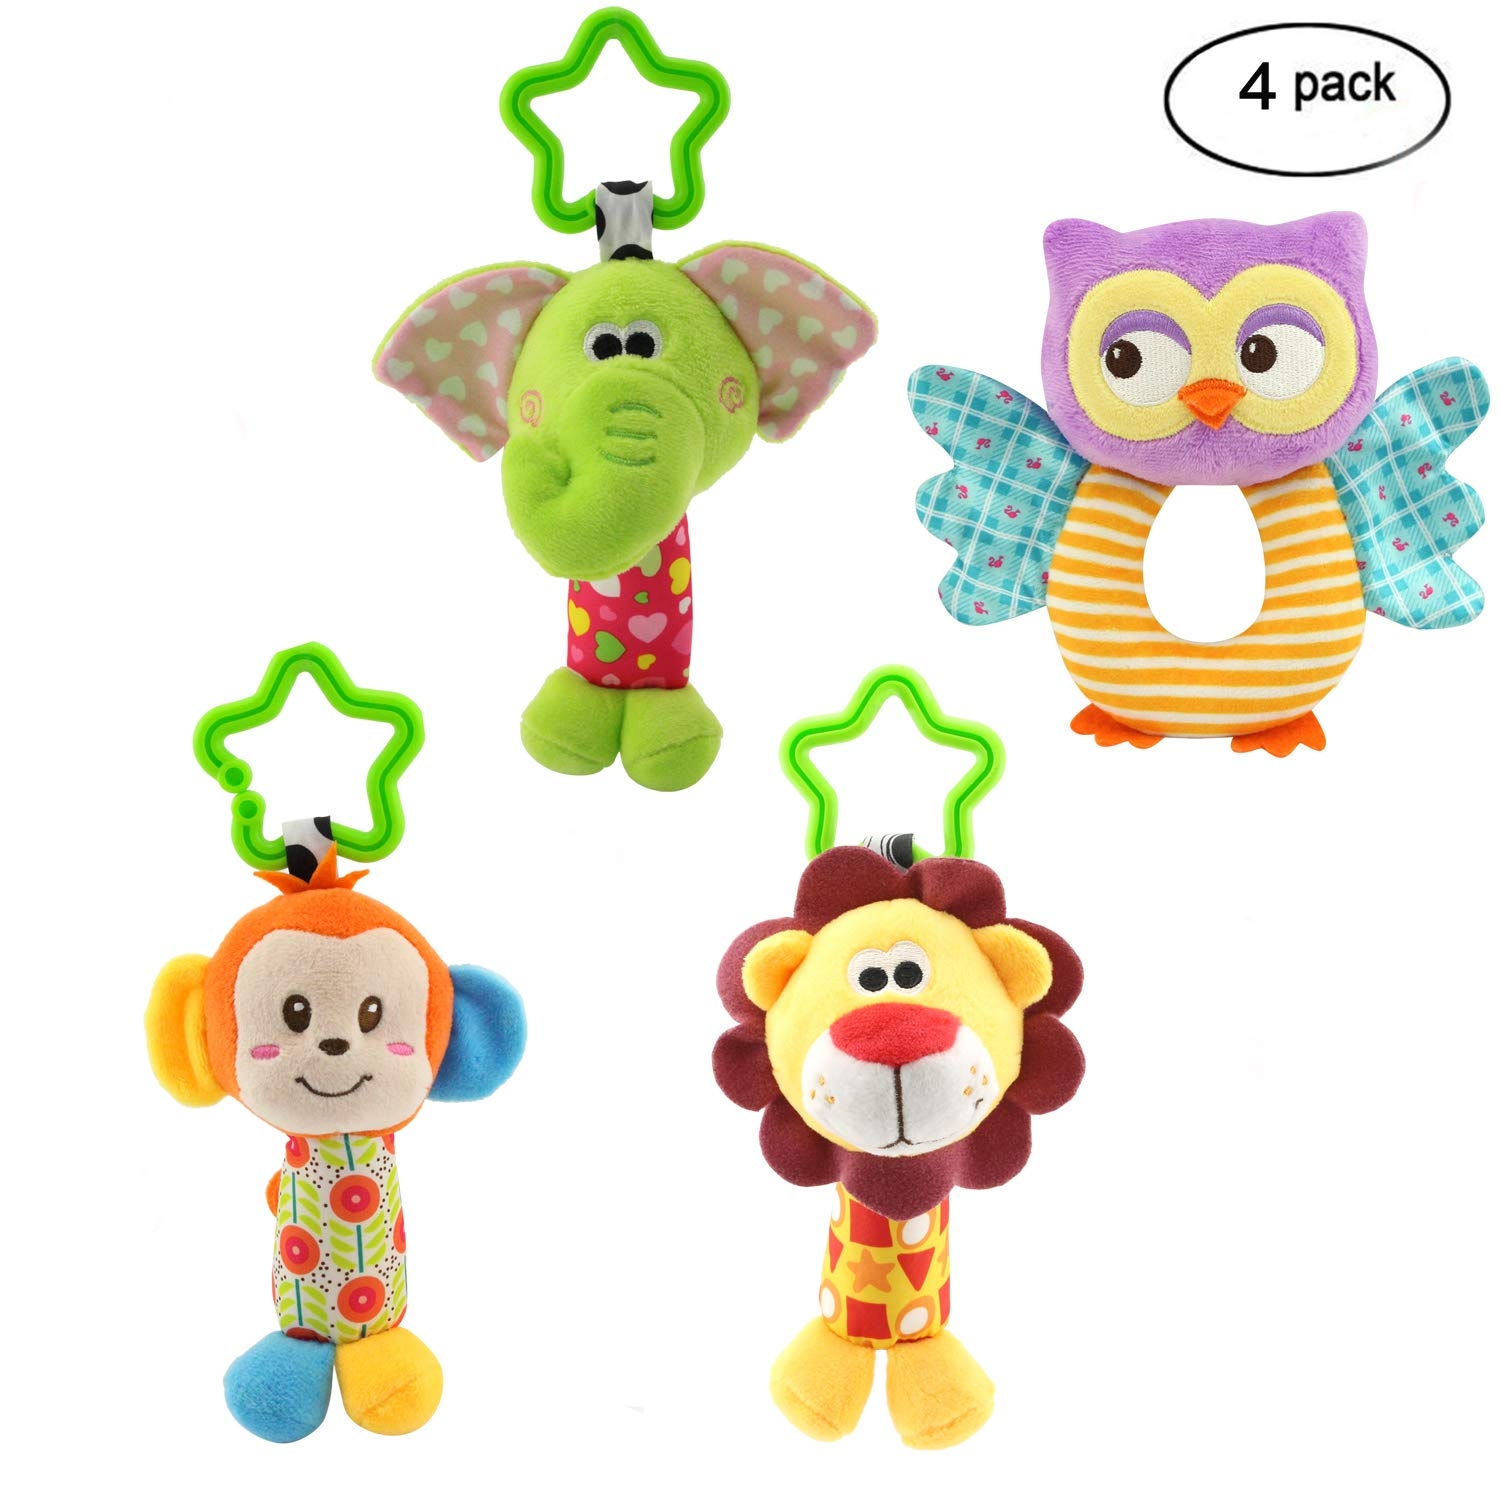 MKONY Baby Crib Hanging Toys, Infant Stroller Car Seat Bed Toys,Newborn Activity Development Toy, Babies Unique Travel Hanging Rattle Plush Toys (4 Pack) by MKONY